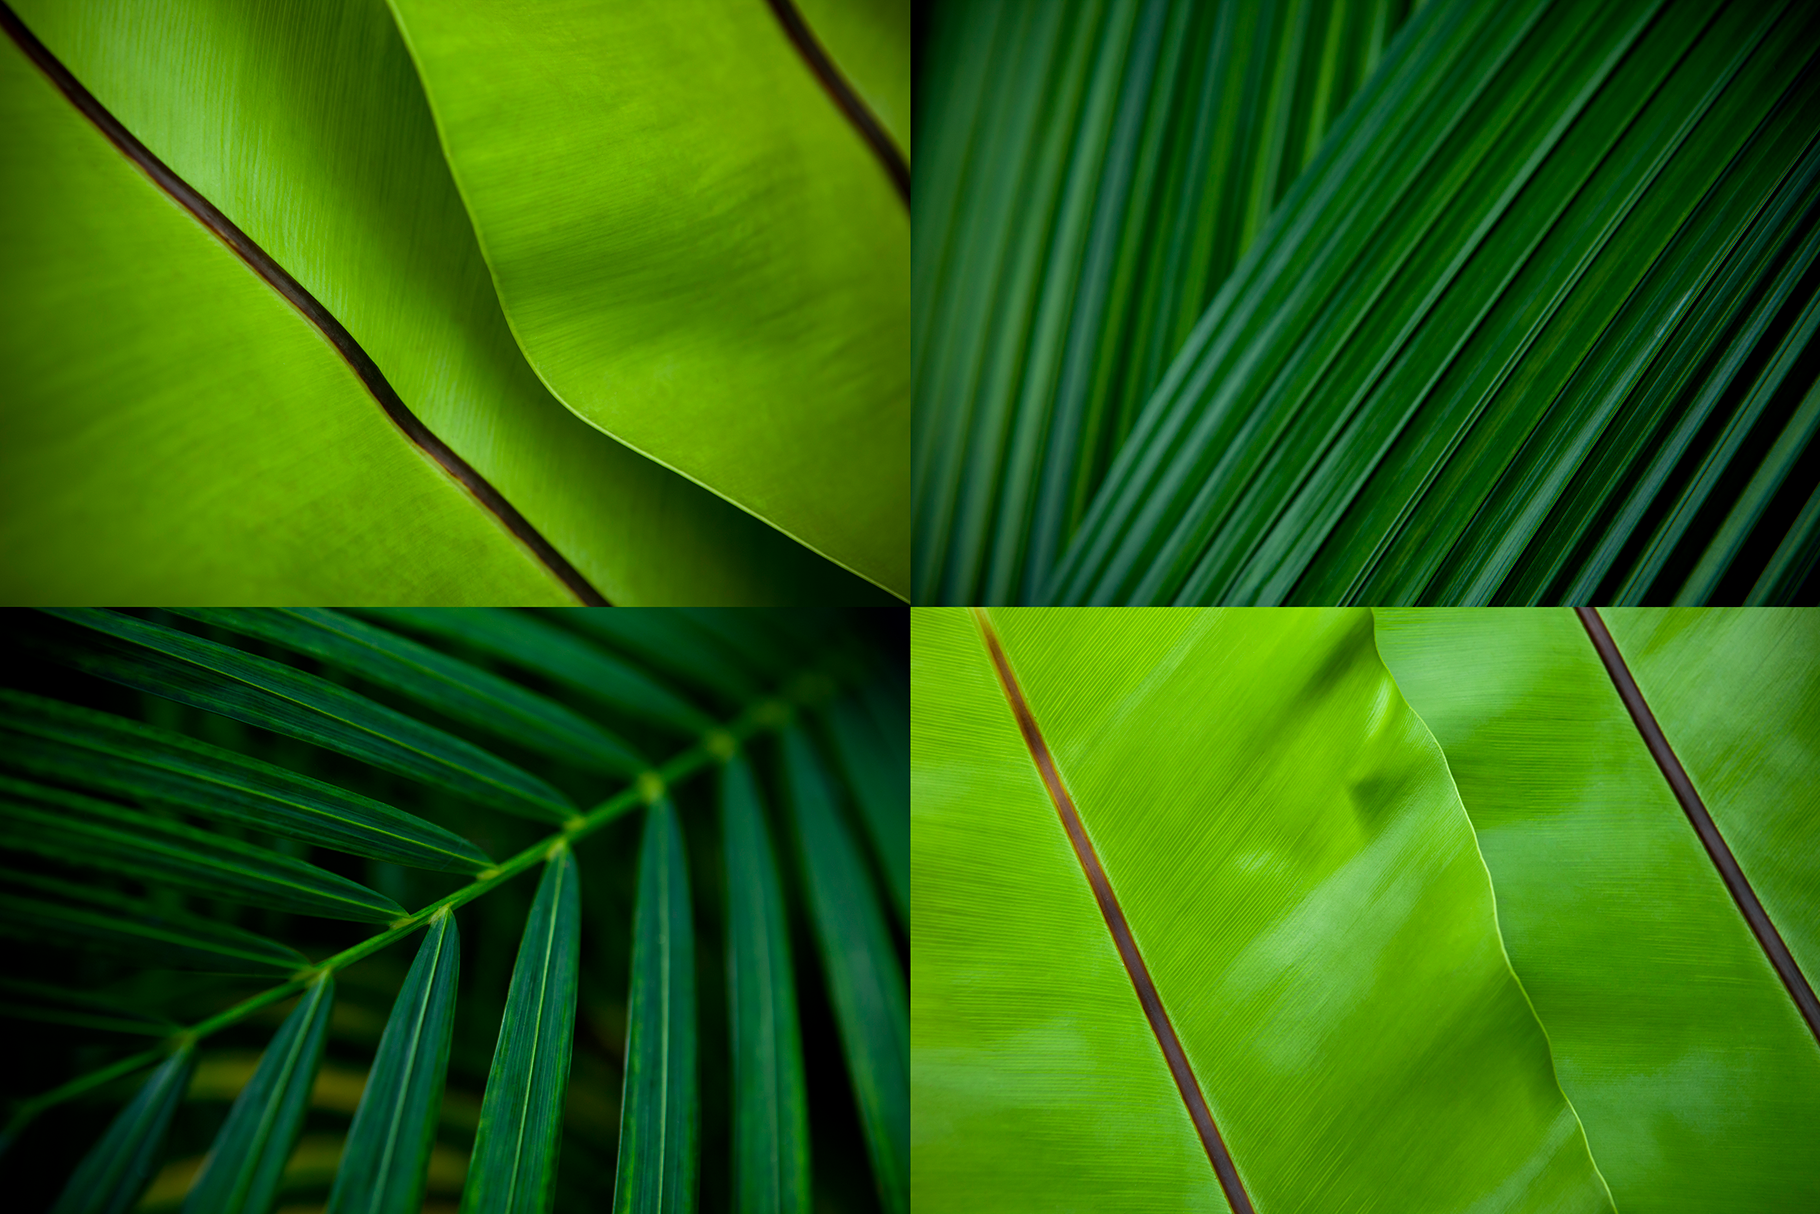 12 Tropical Green Leaves Backgrounds example image 3